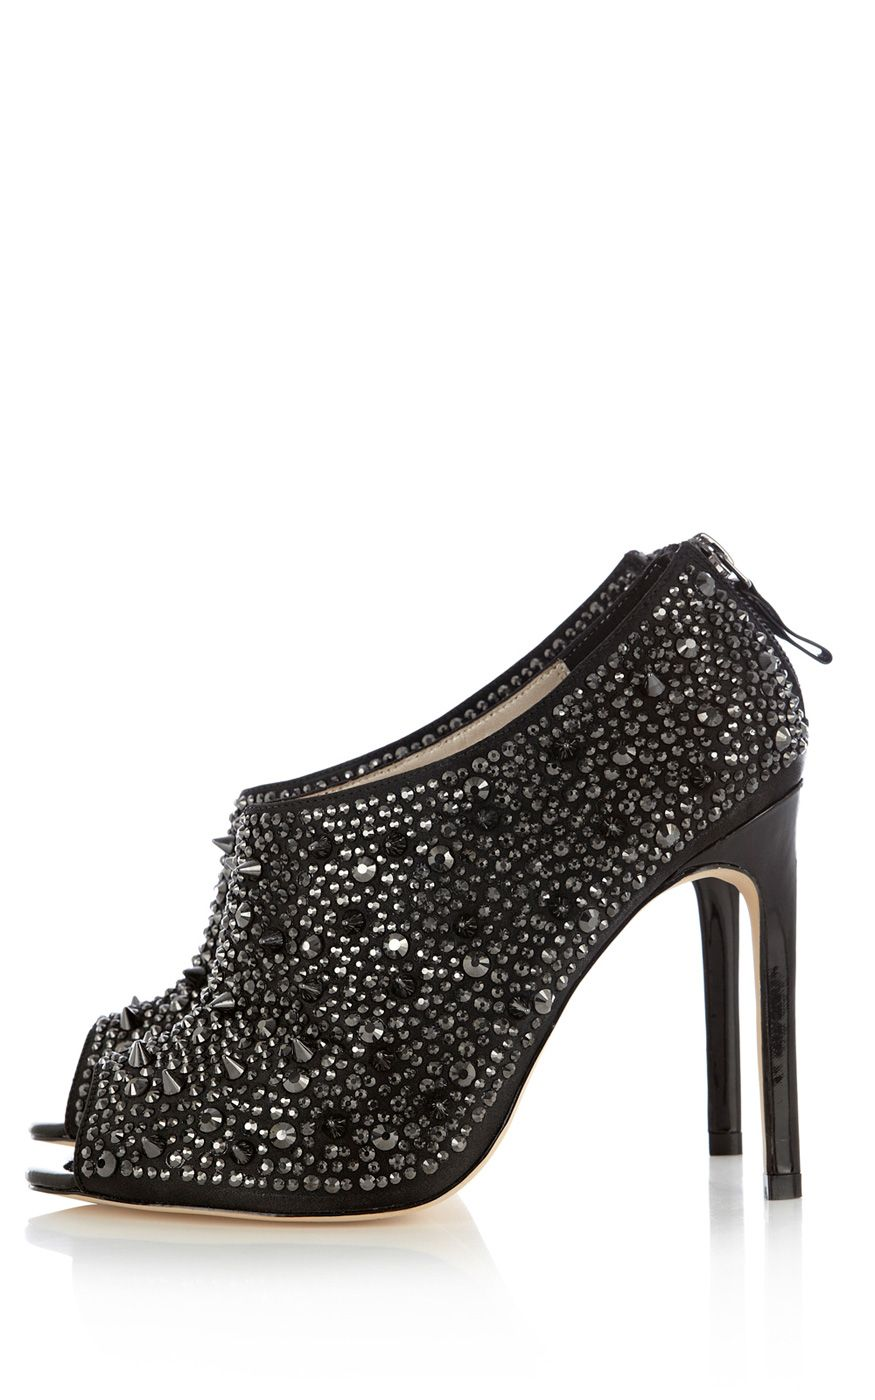 Stud & jewel shoe boot | Luxury Women's maximalism | Karen Millen